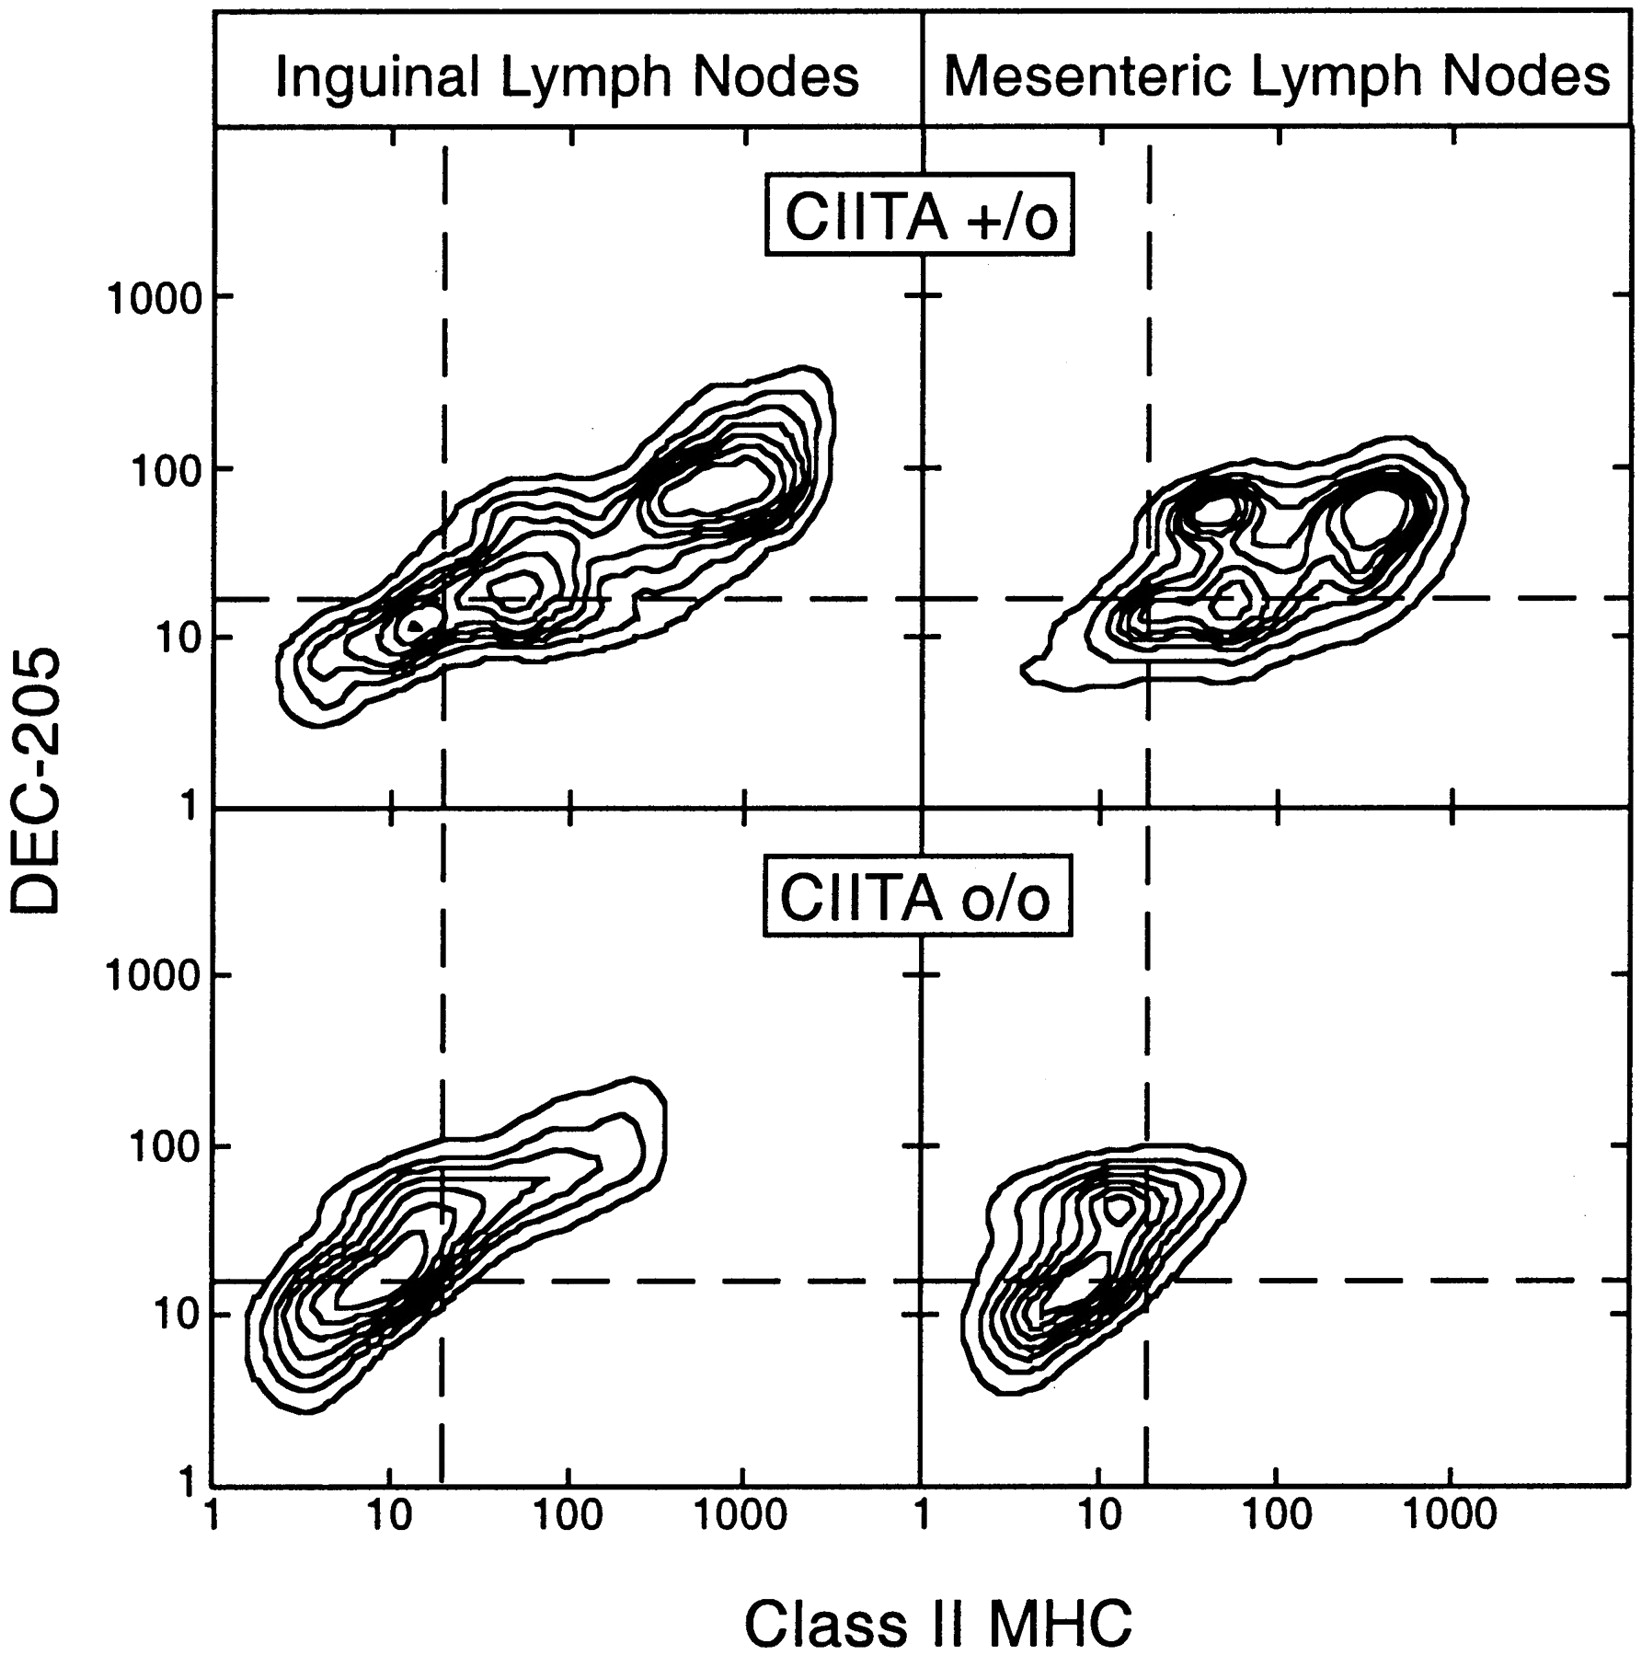 The Dendritic Cell Populations of Mouse Lymph Nodes   The Journal of ...